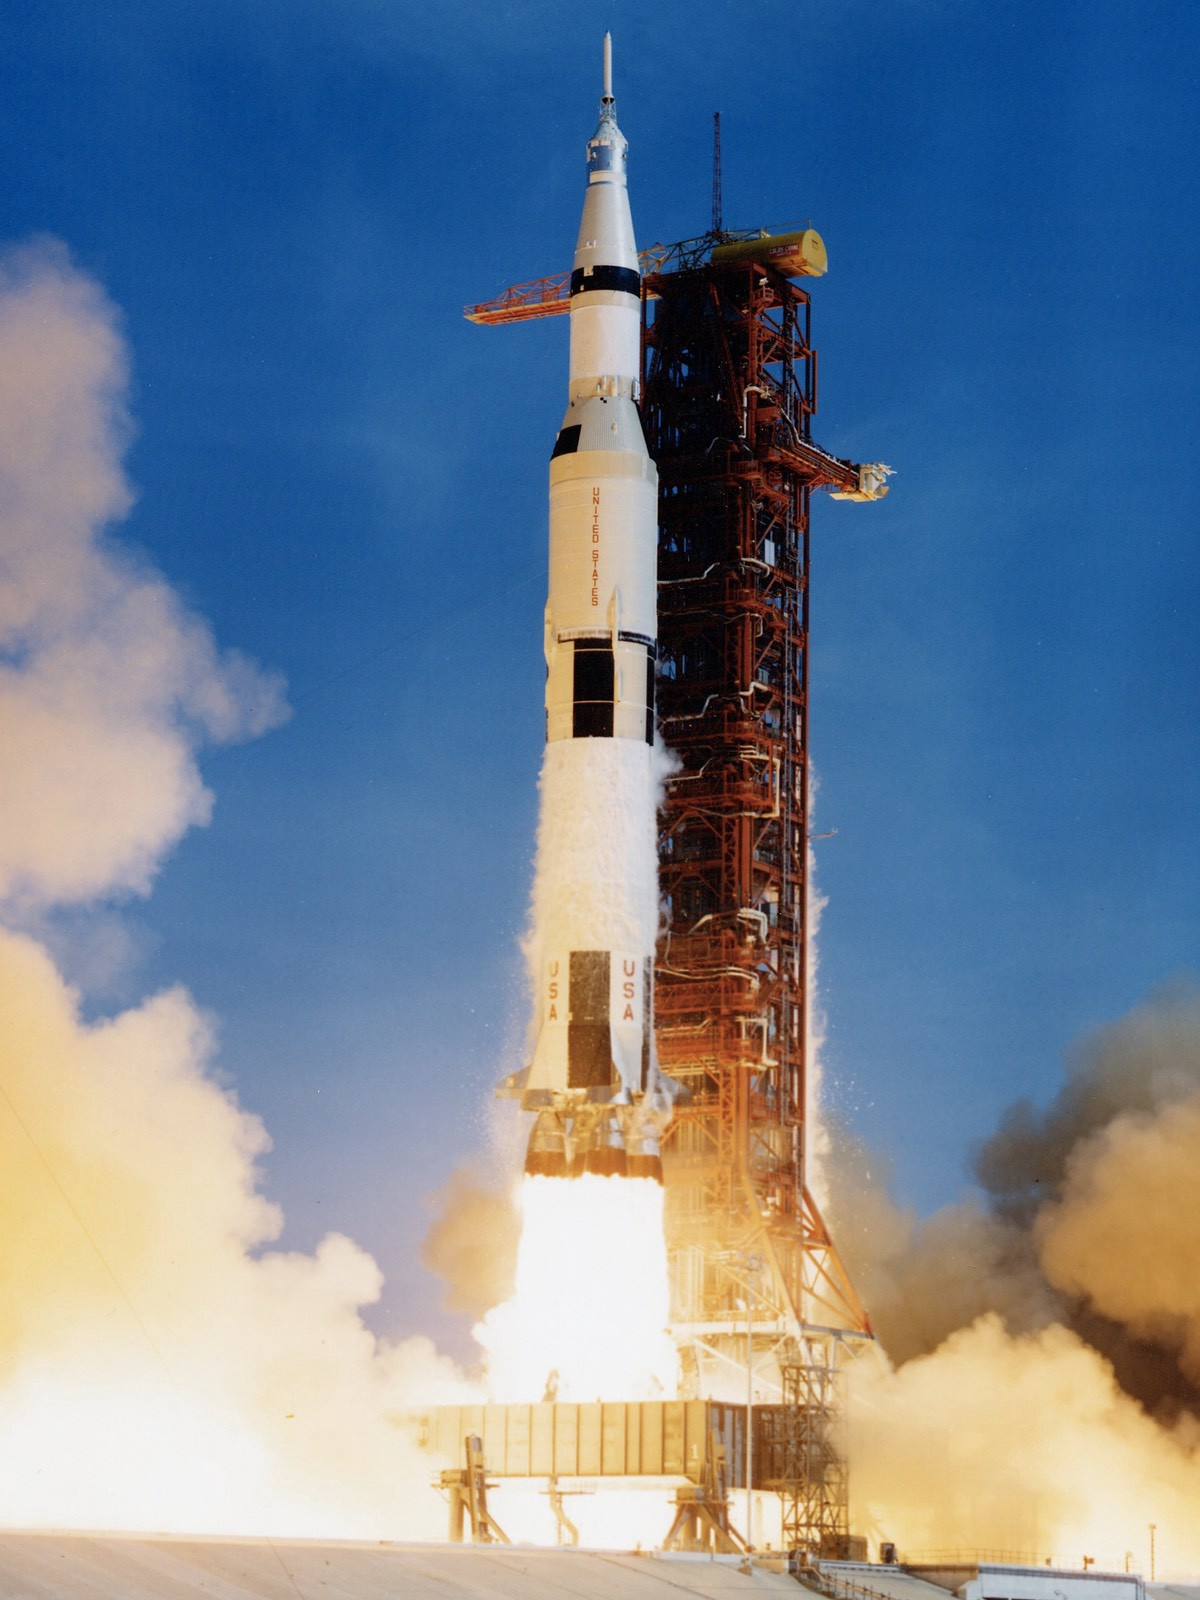 It is unlikely a Saturn V launch could be kept secret